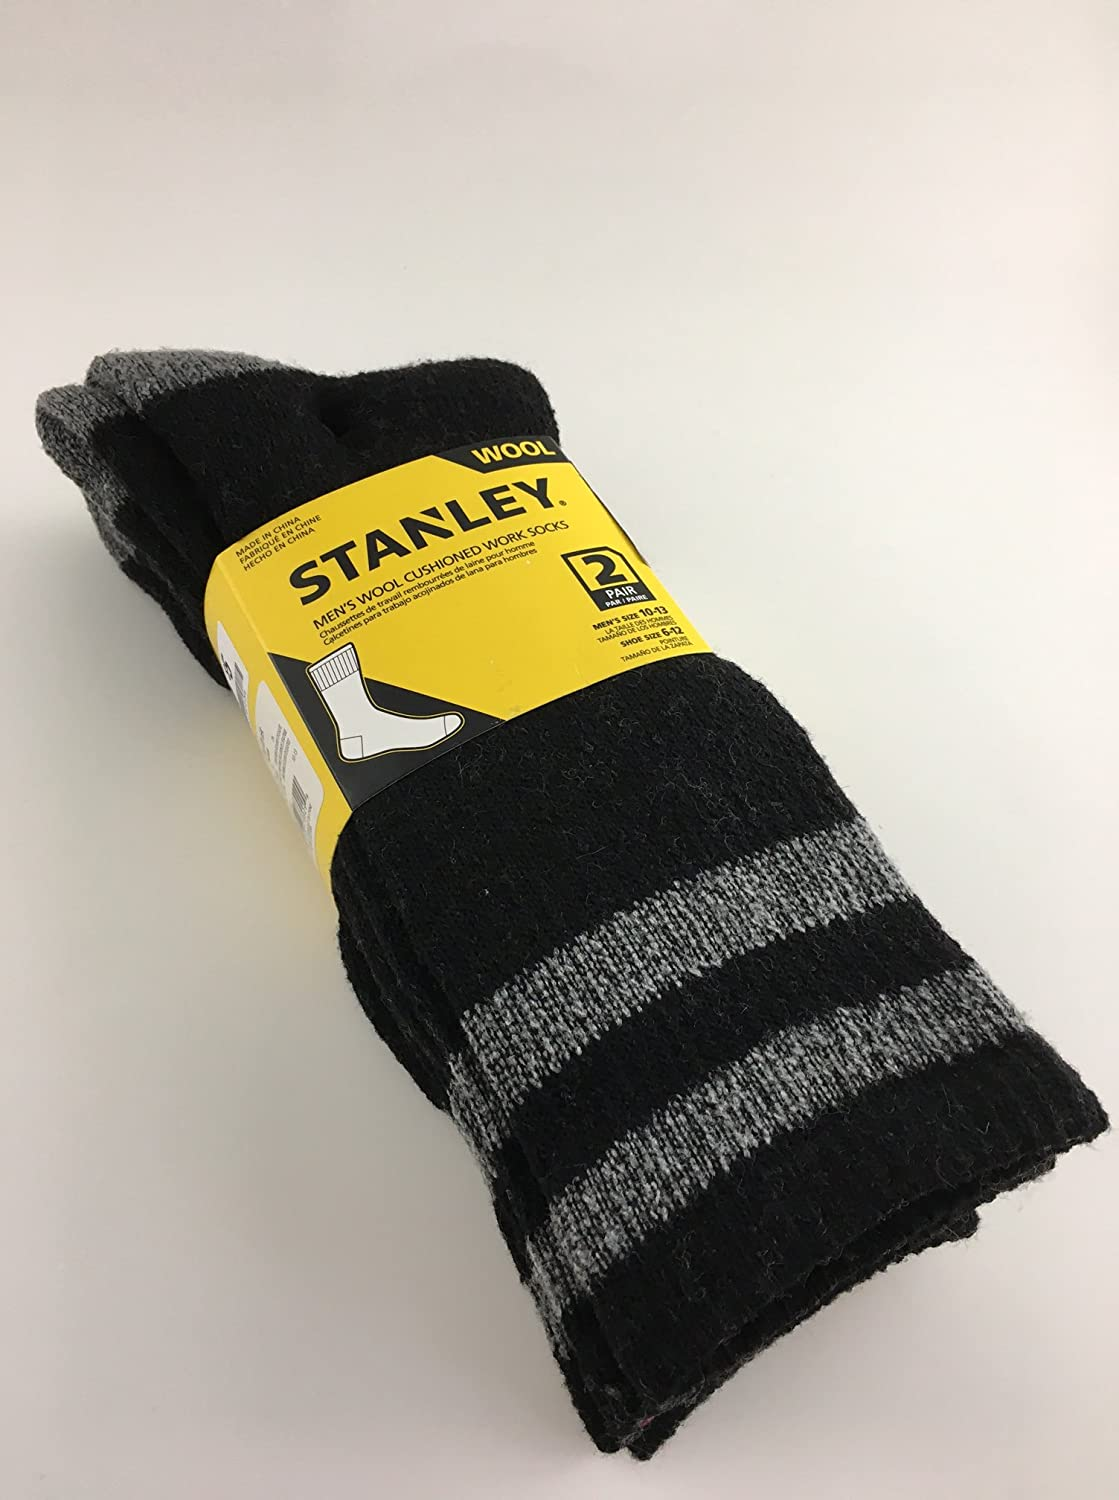 Amazon.com: Stanley Mens Wool Cushioned Work Socks - 2 Pair (Black): Clothing